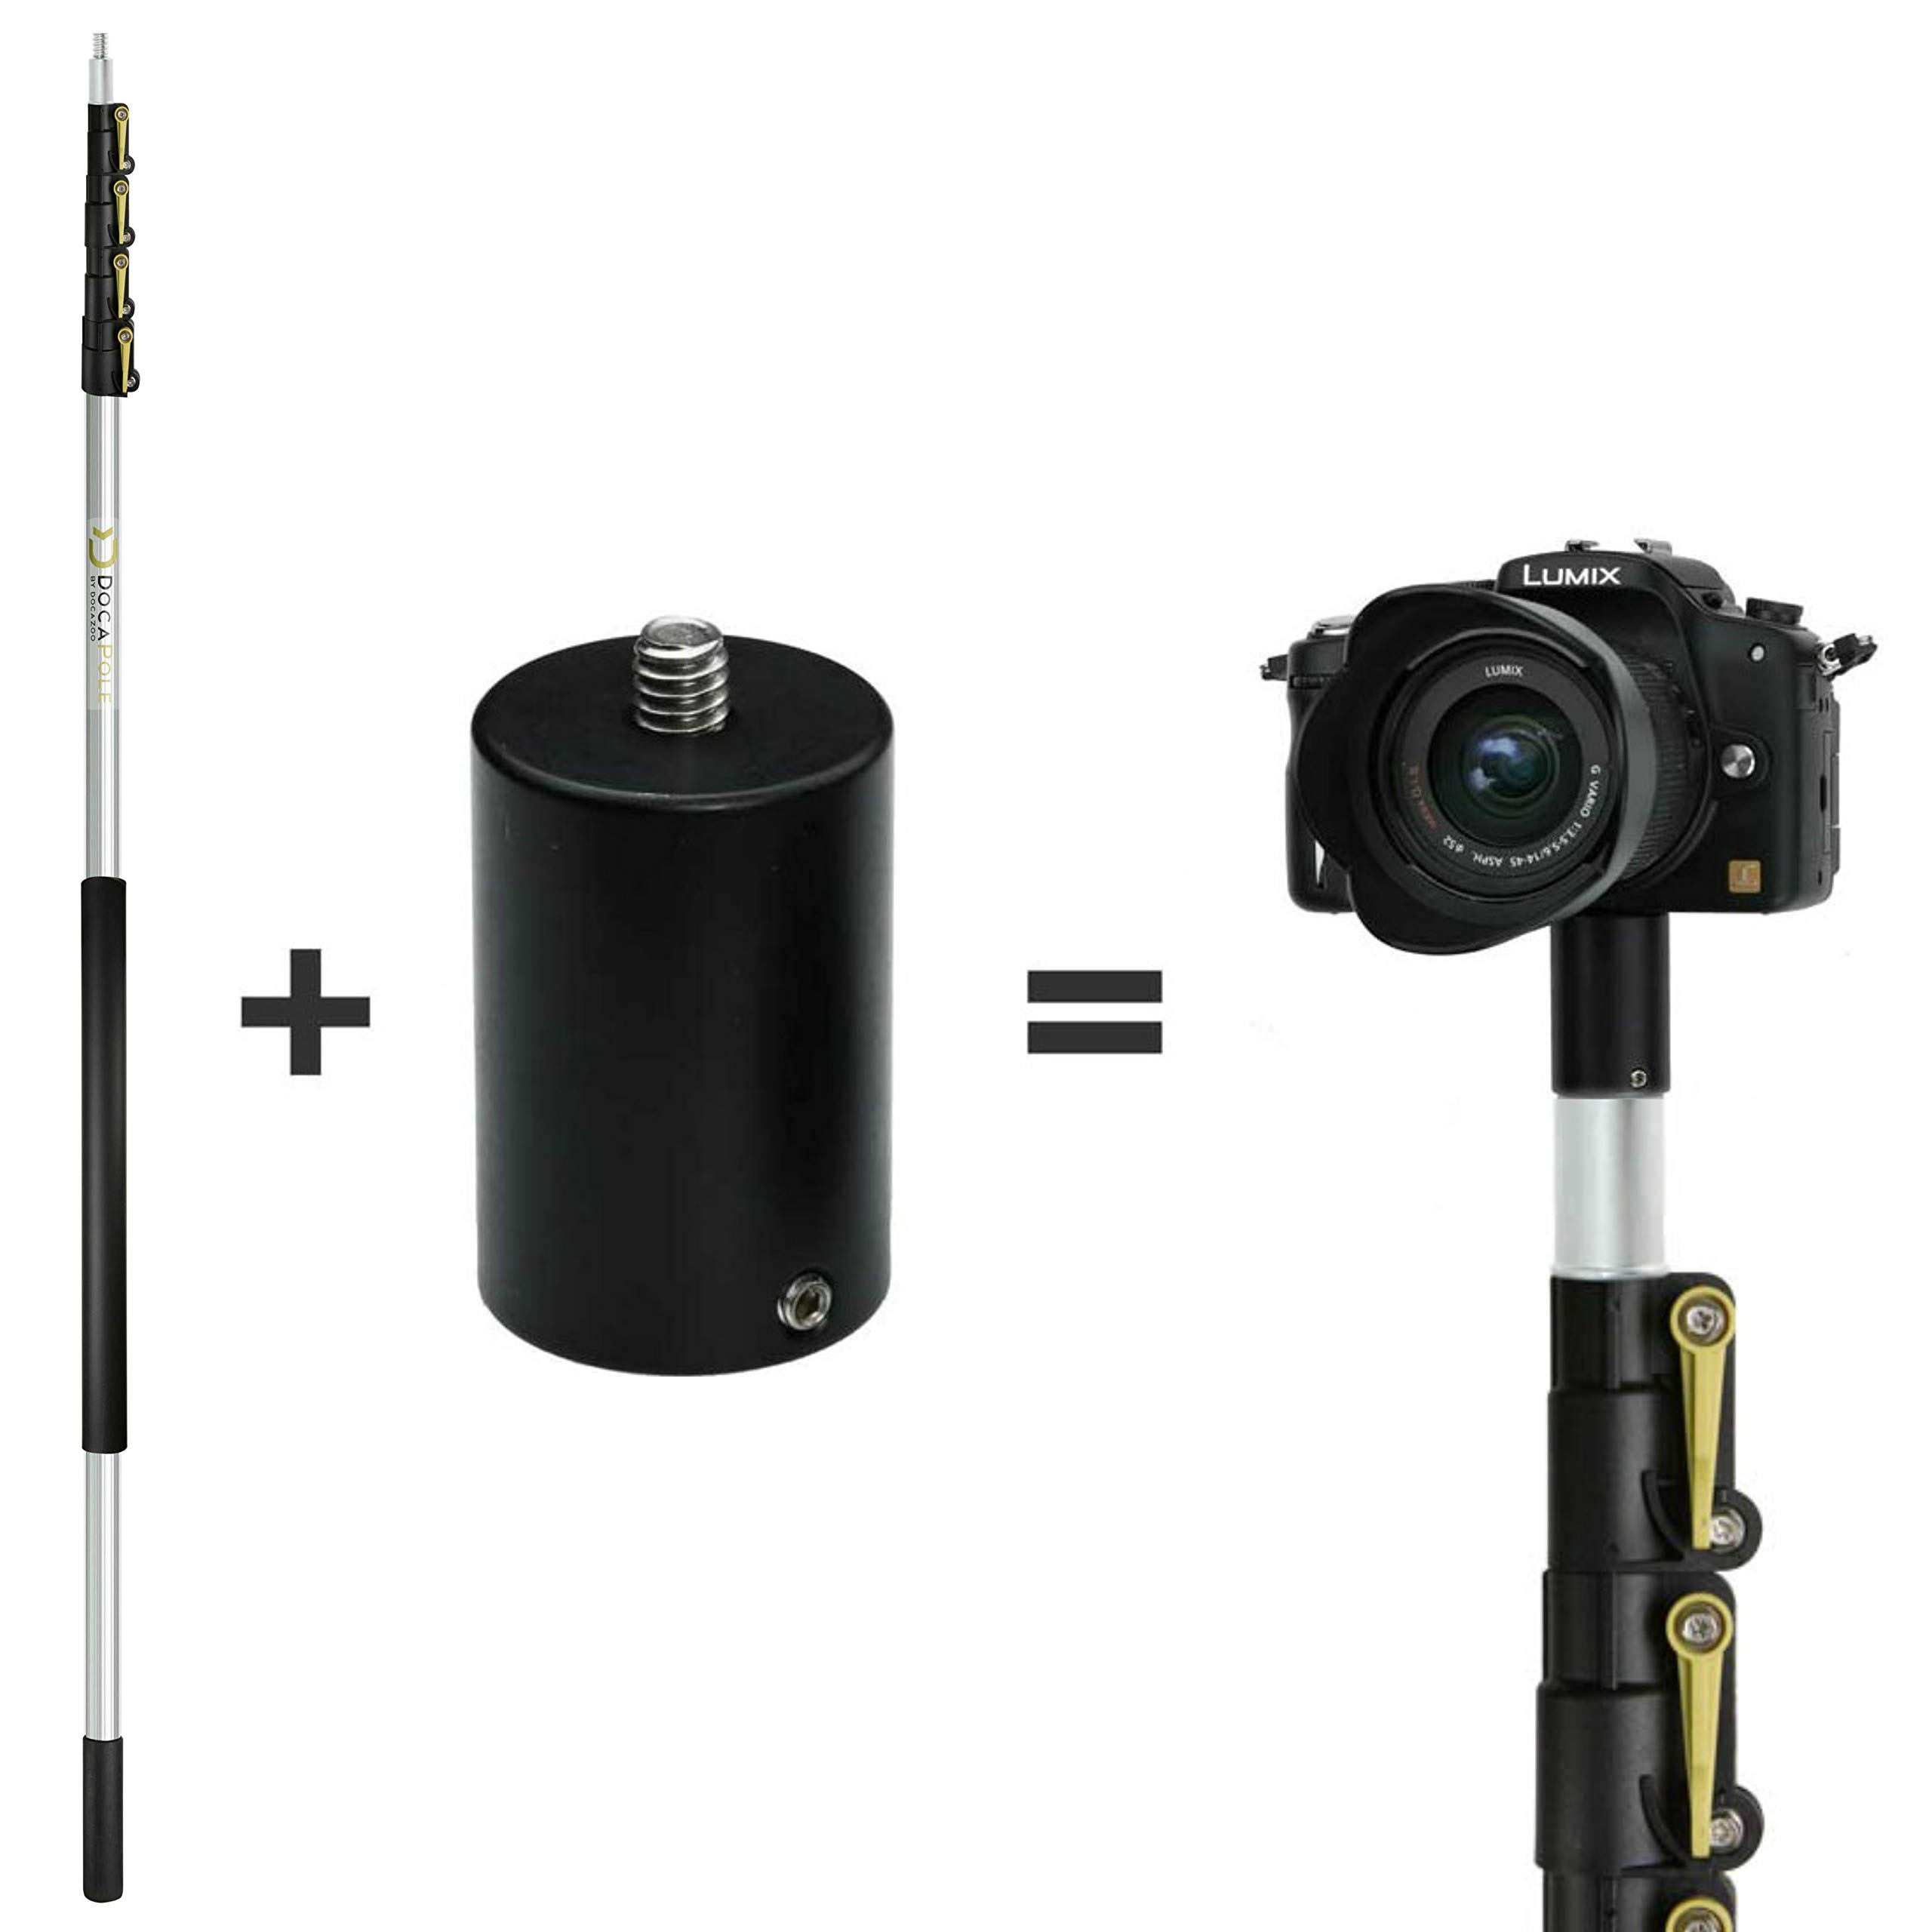 DocaPole 24 Foot Camera Pole - 6-24 ft Extension Pole + ClickSnap Camera Adapter for GoPro, Camera or Video Camera | Provides up to 30 Feet of Reach | Painters Pole Camera Adapter by DOCAZOO